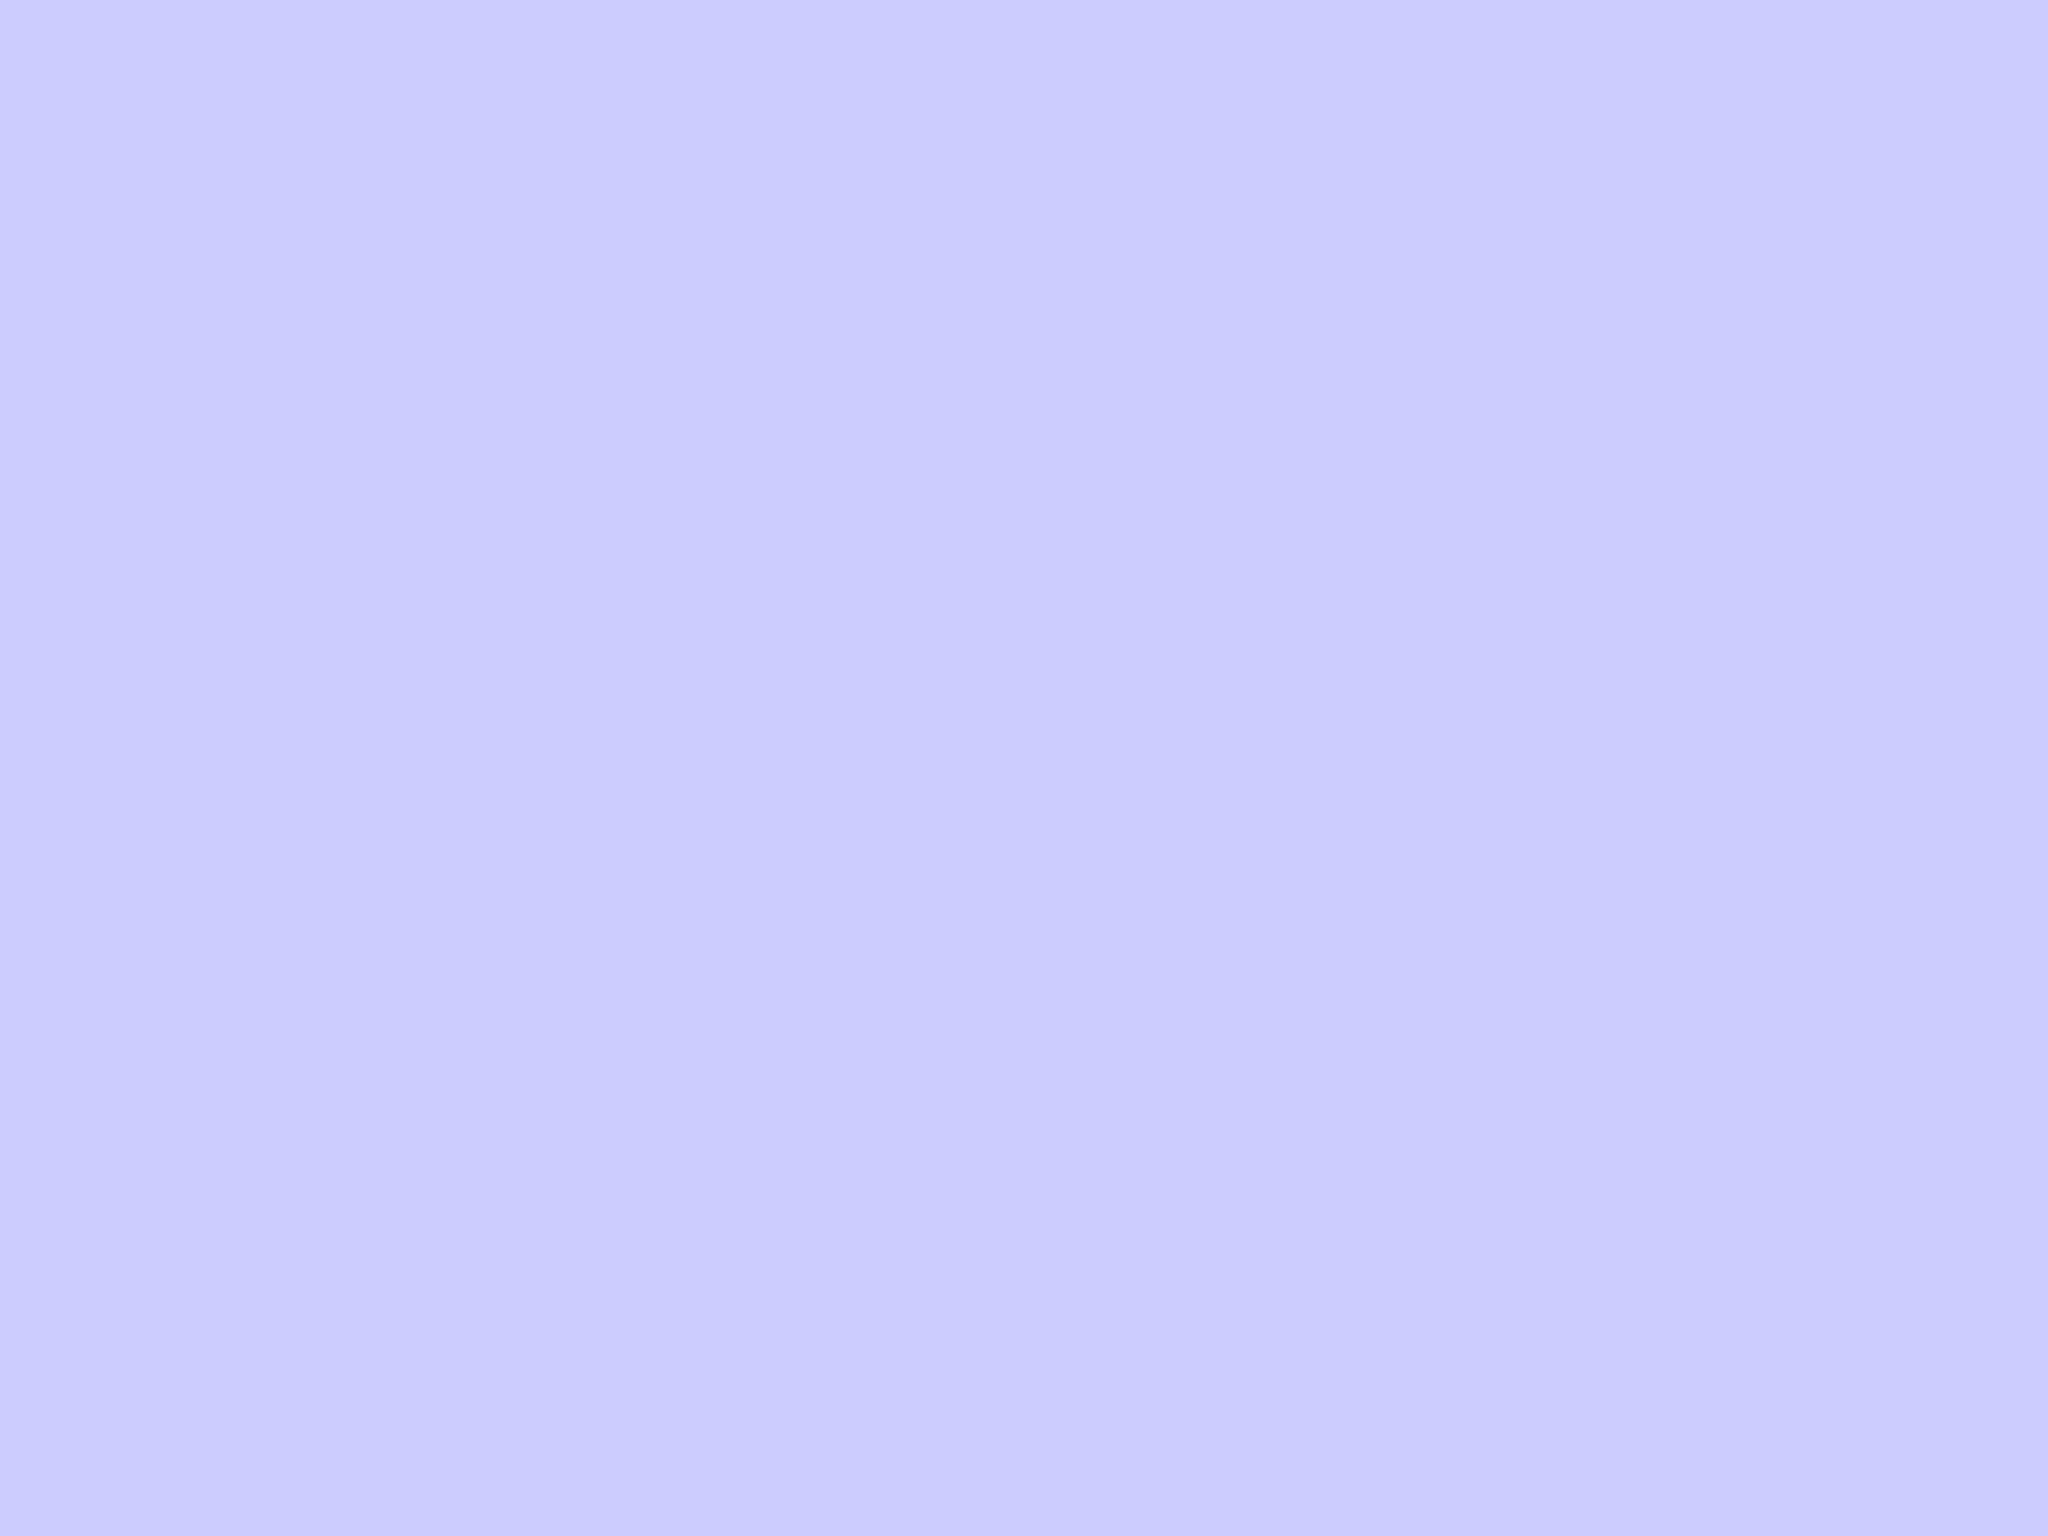 2048x1536 Lavender Blue Solid Color Background